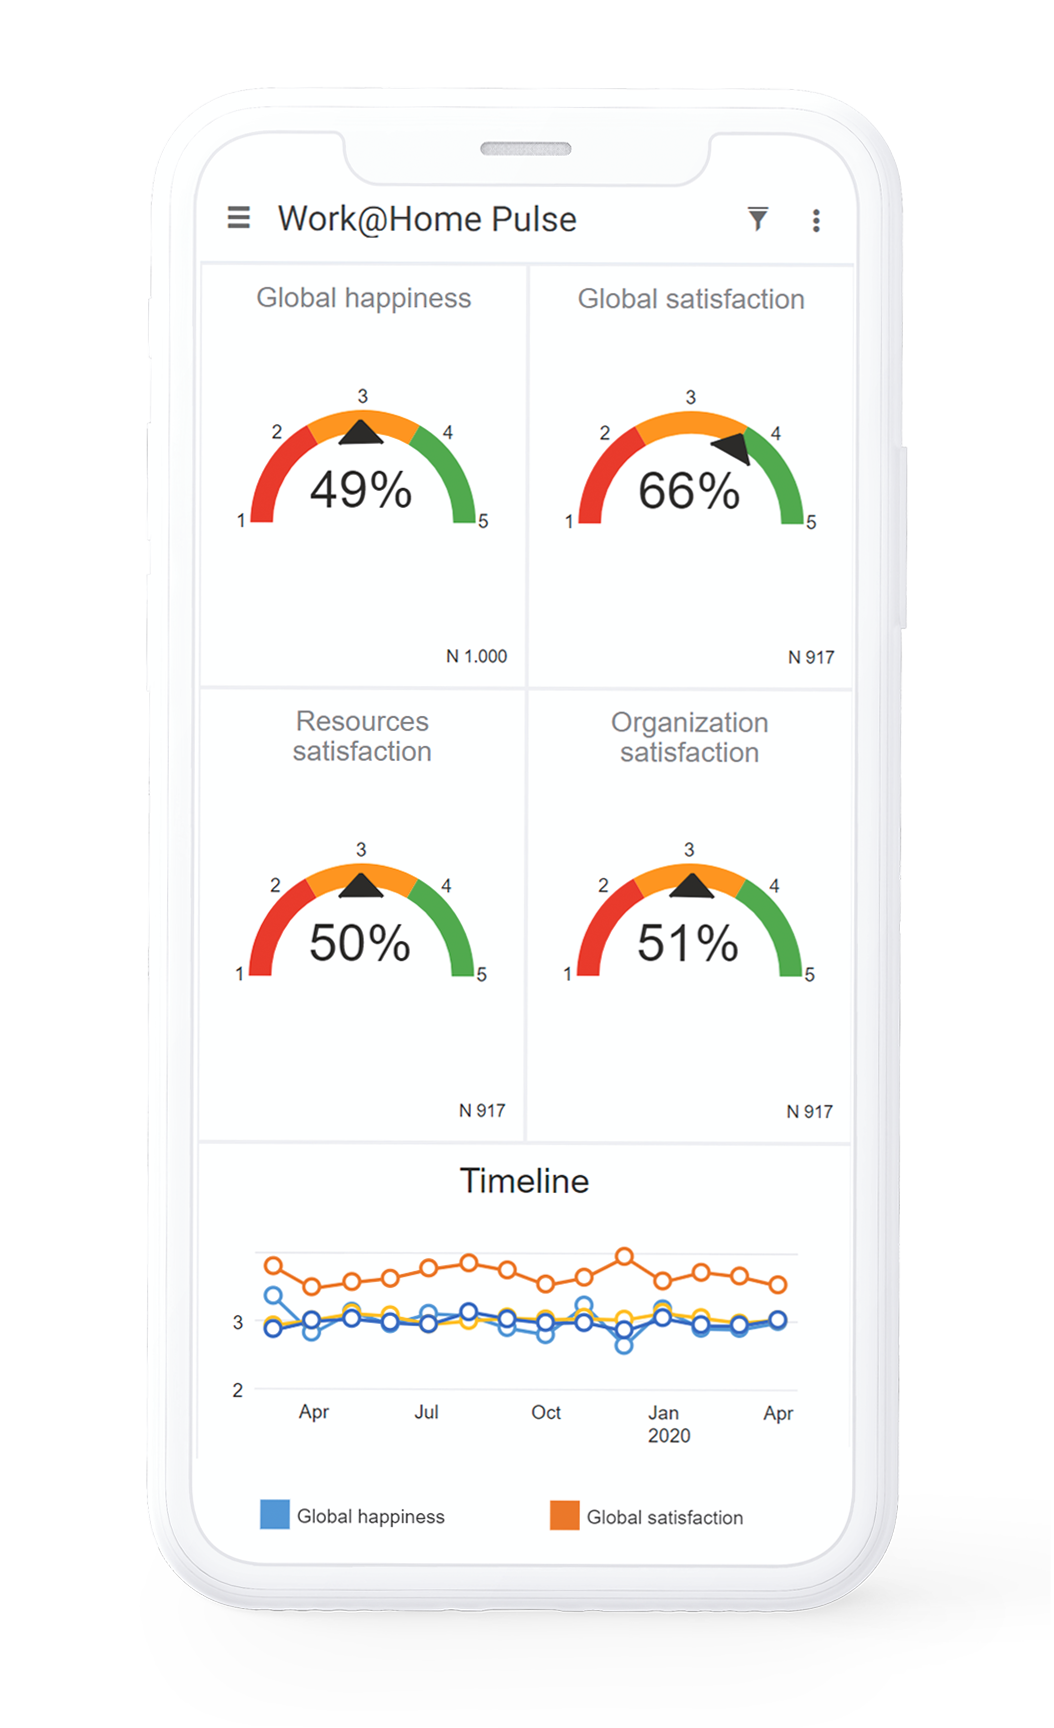 Work@home pulse survey report iphone